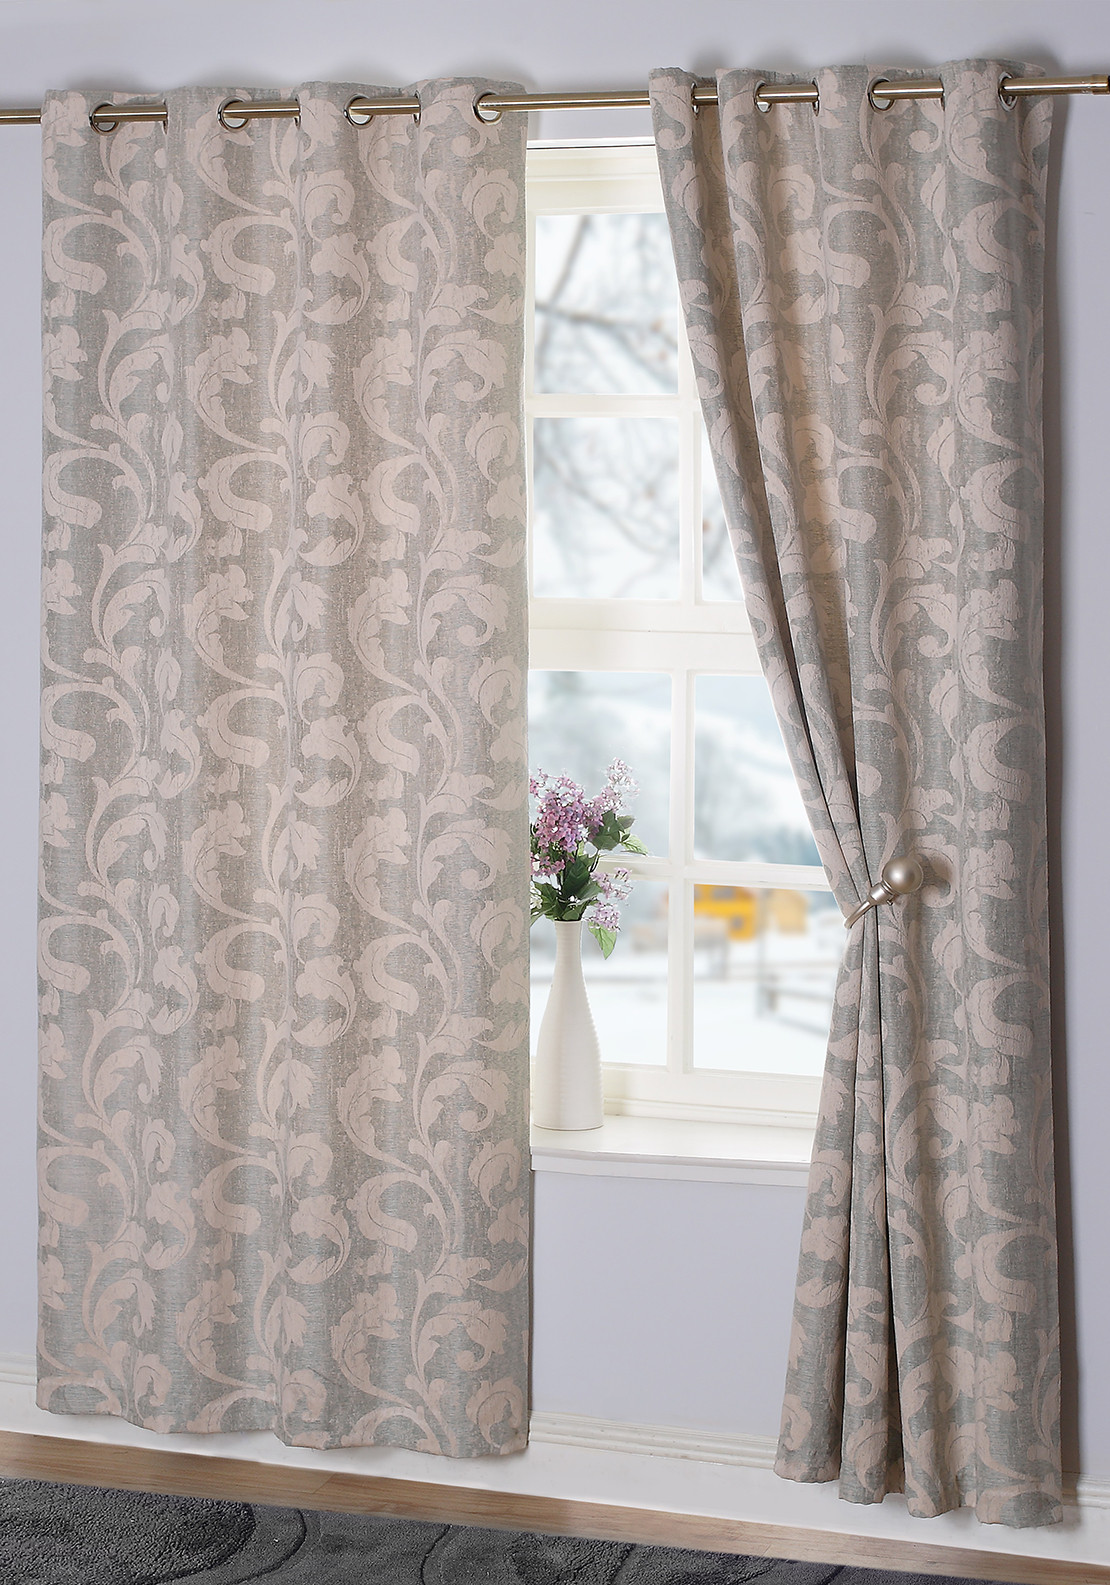 E.A. Delaney Rochelle Eyelet Curtains, Duck Egg